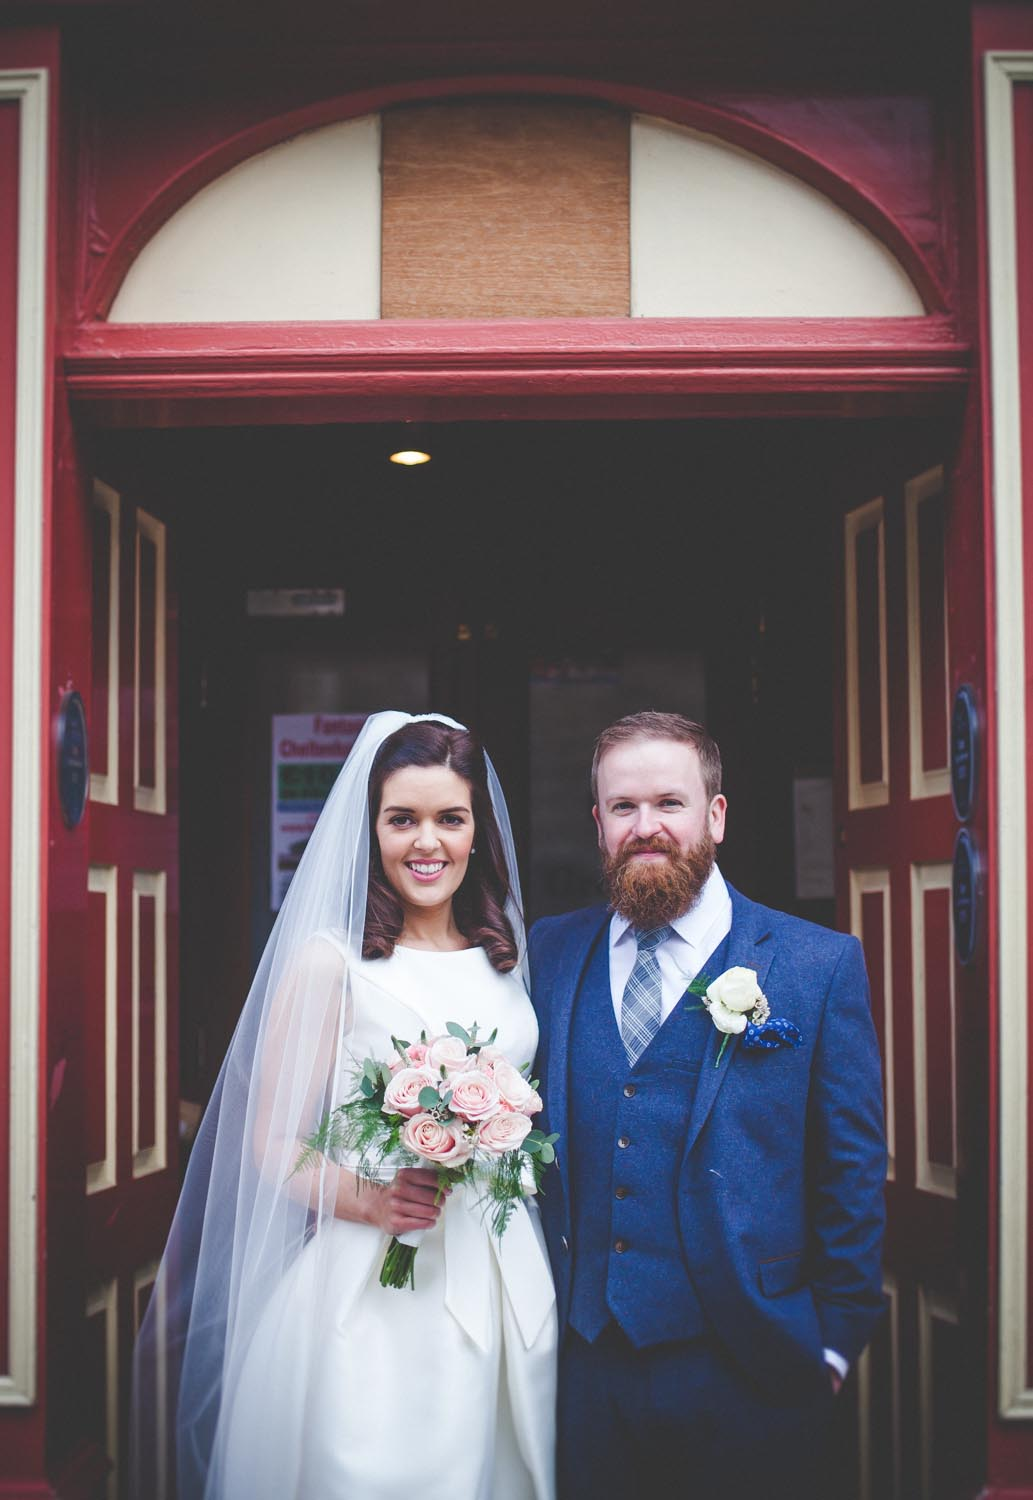 Step House wedding photographer Carlow Borris081.jpg